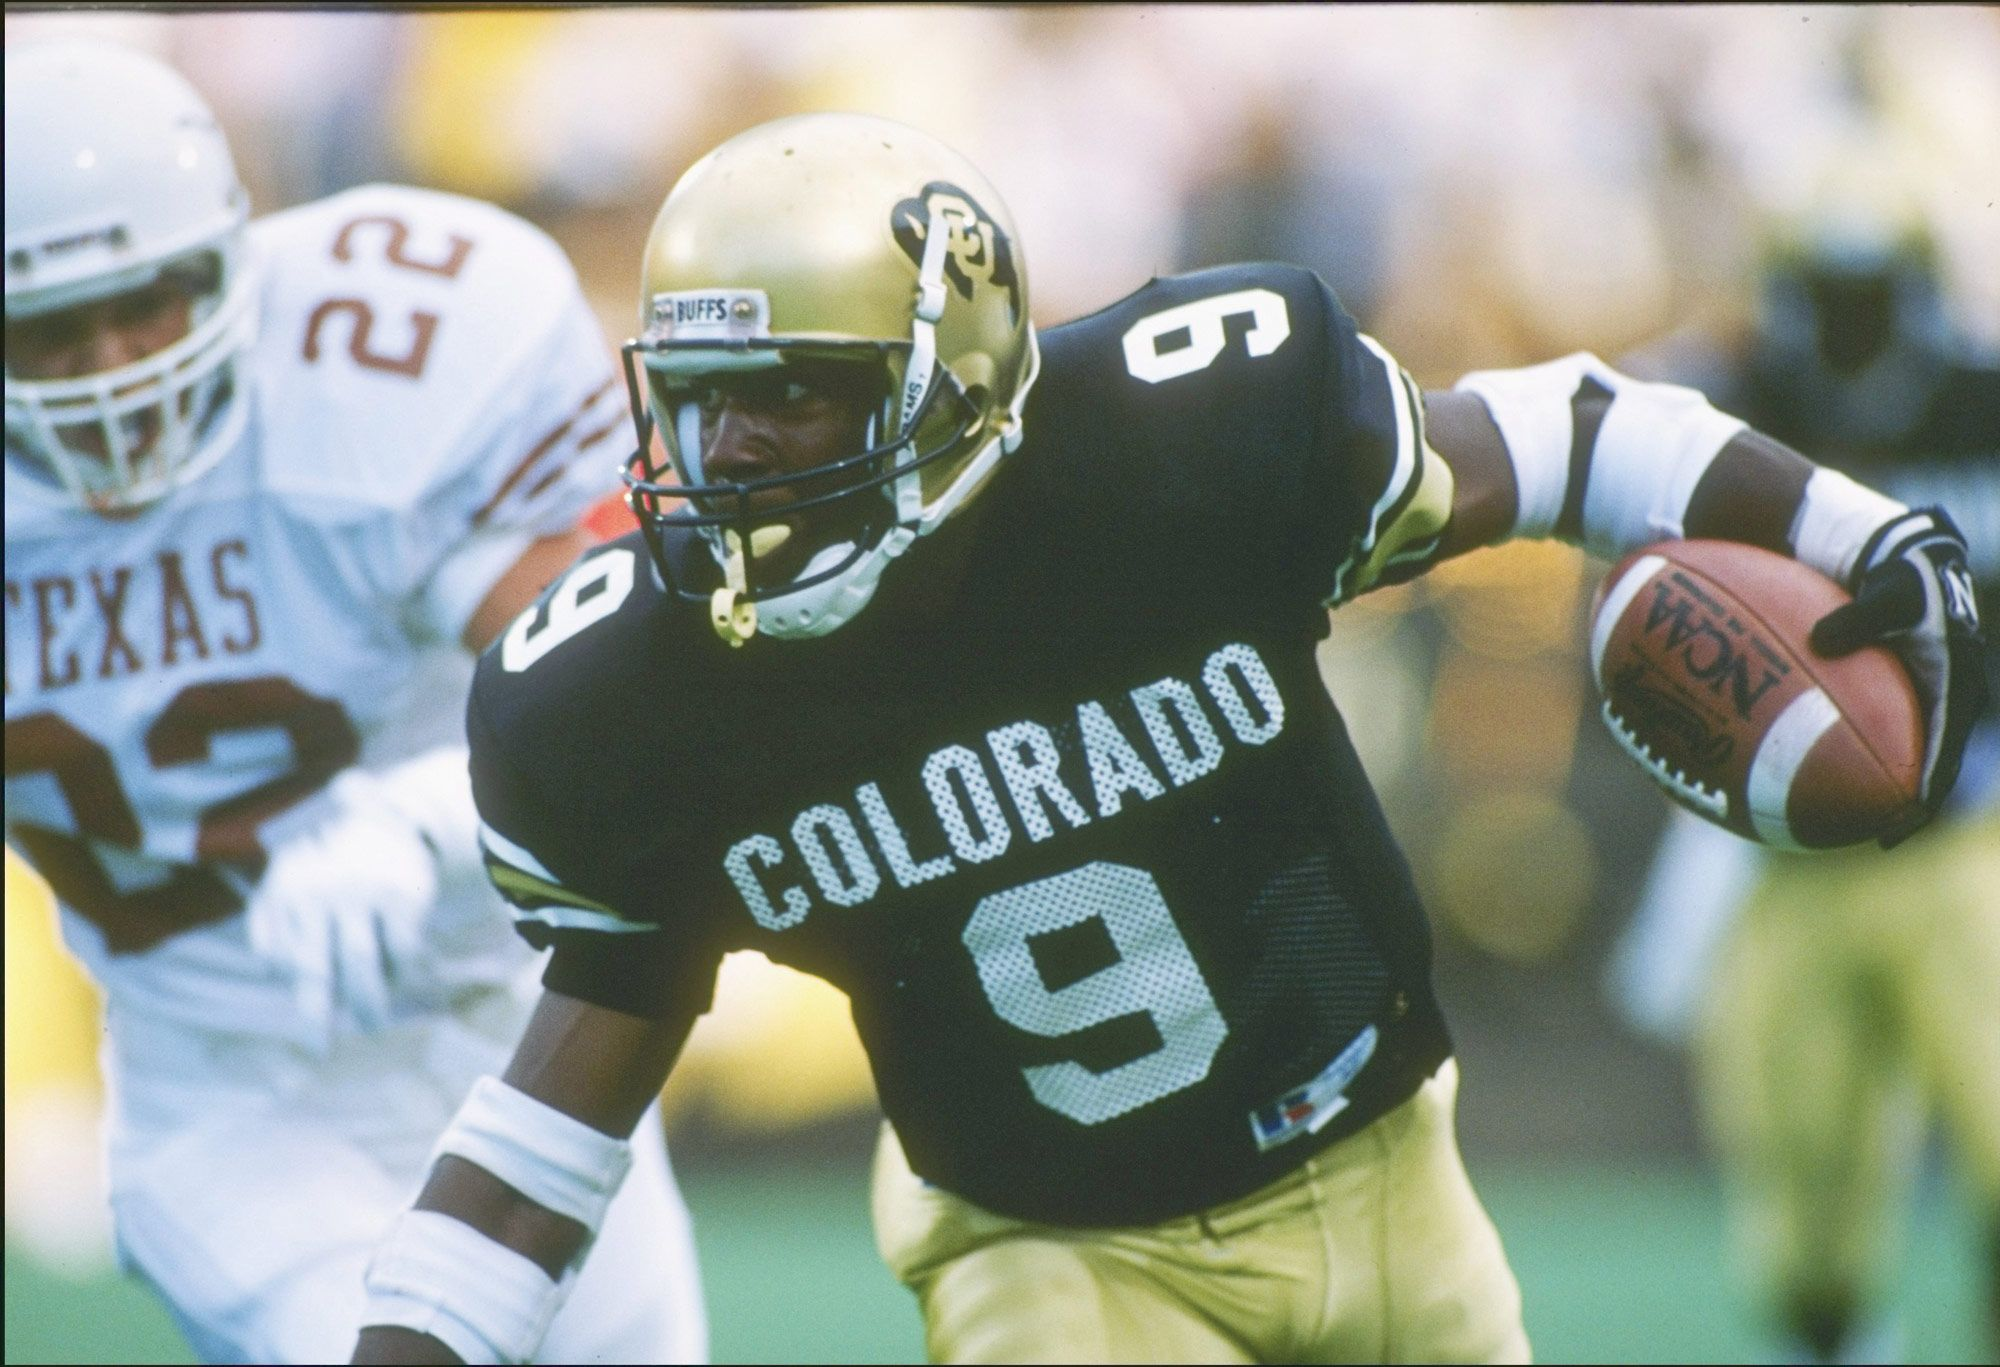 Pin By Colorado Buffaloes On Sports And Fitness Colorado